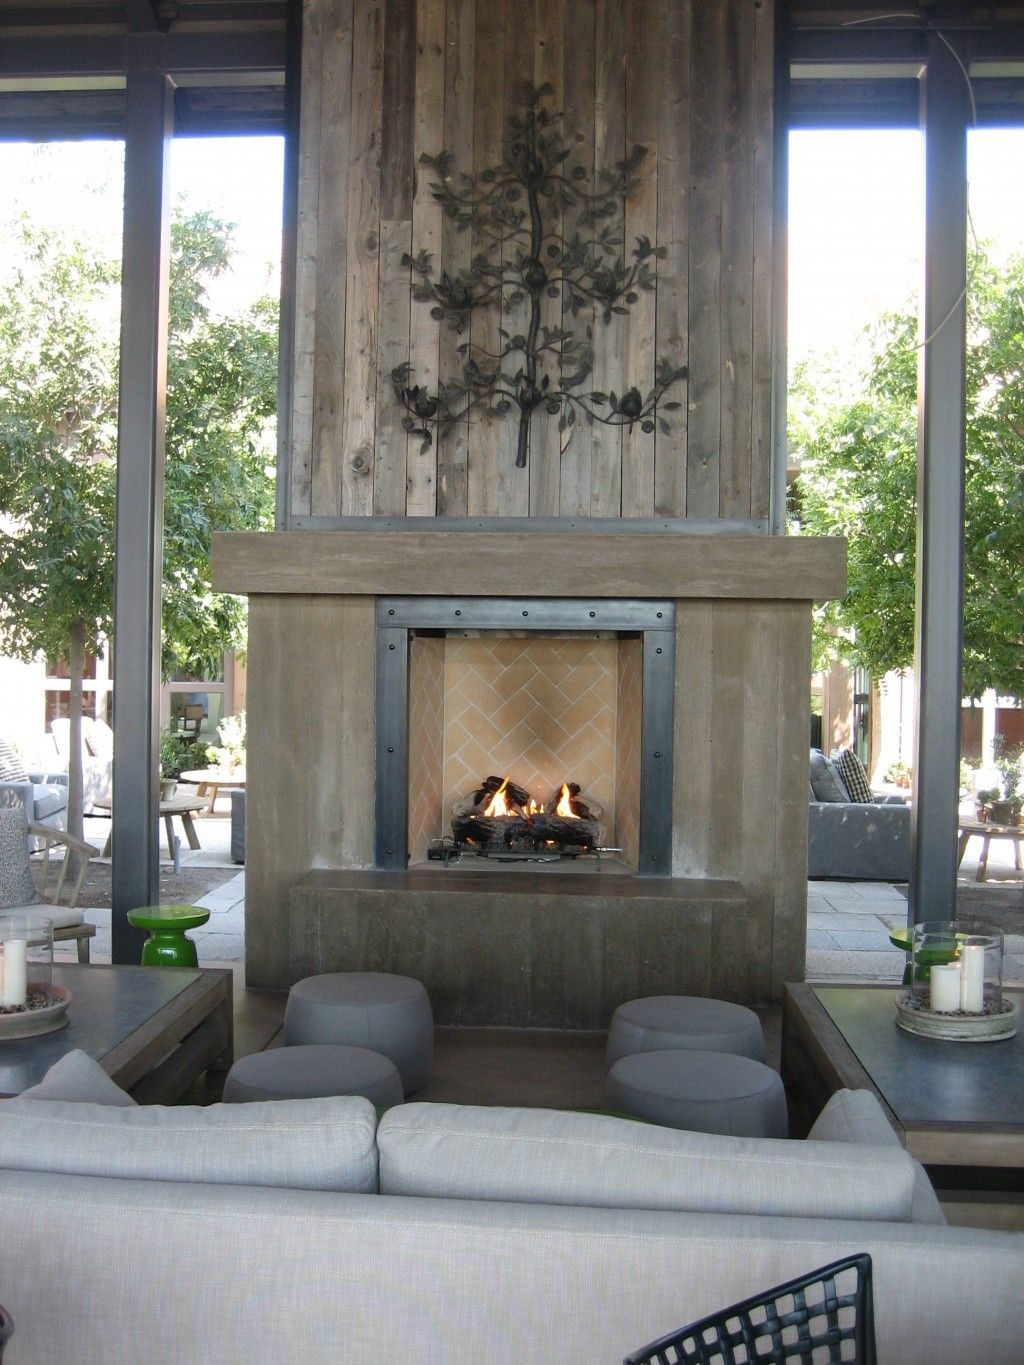 Barn Architecture Styles With Conservative Fireplace For